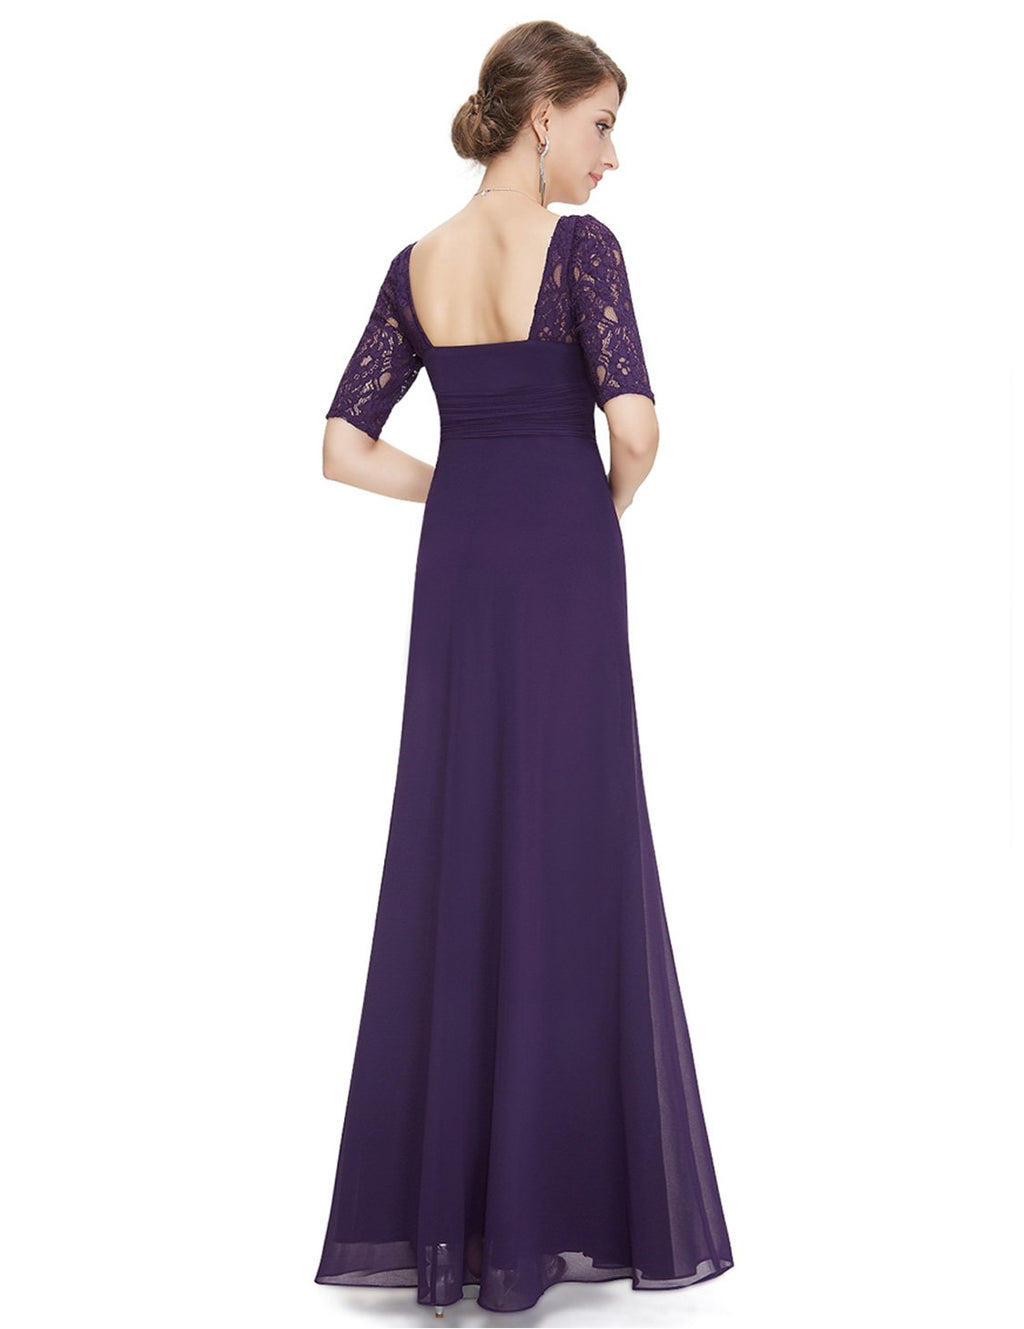 Square Neckline Long Gown Dark Purple